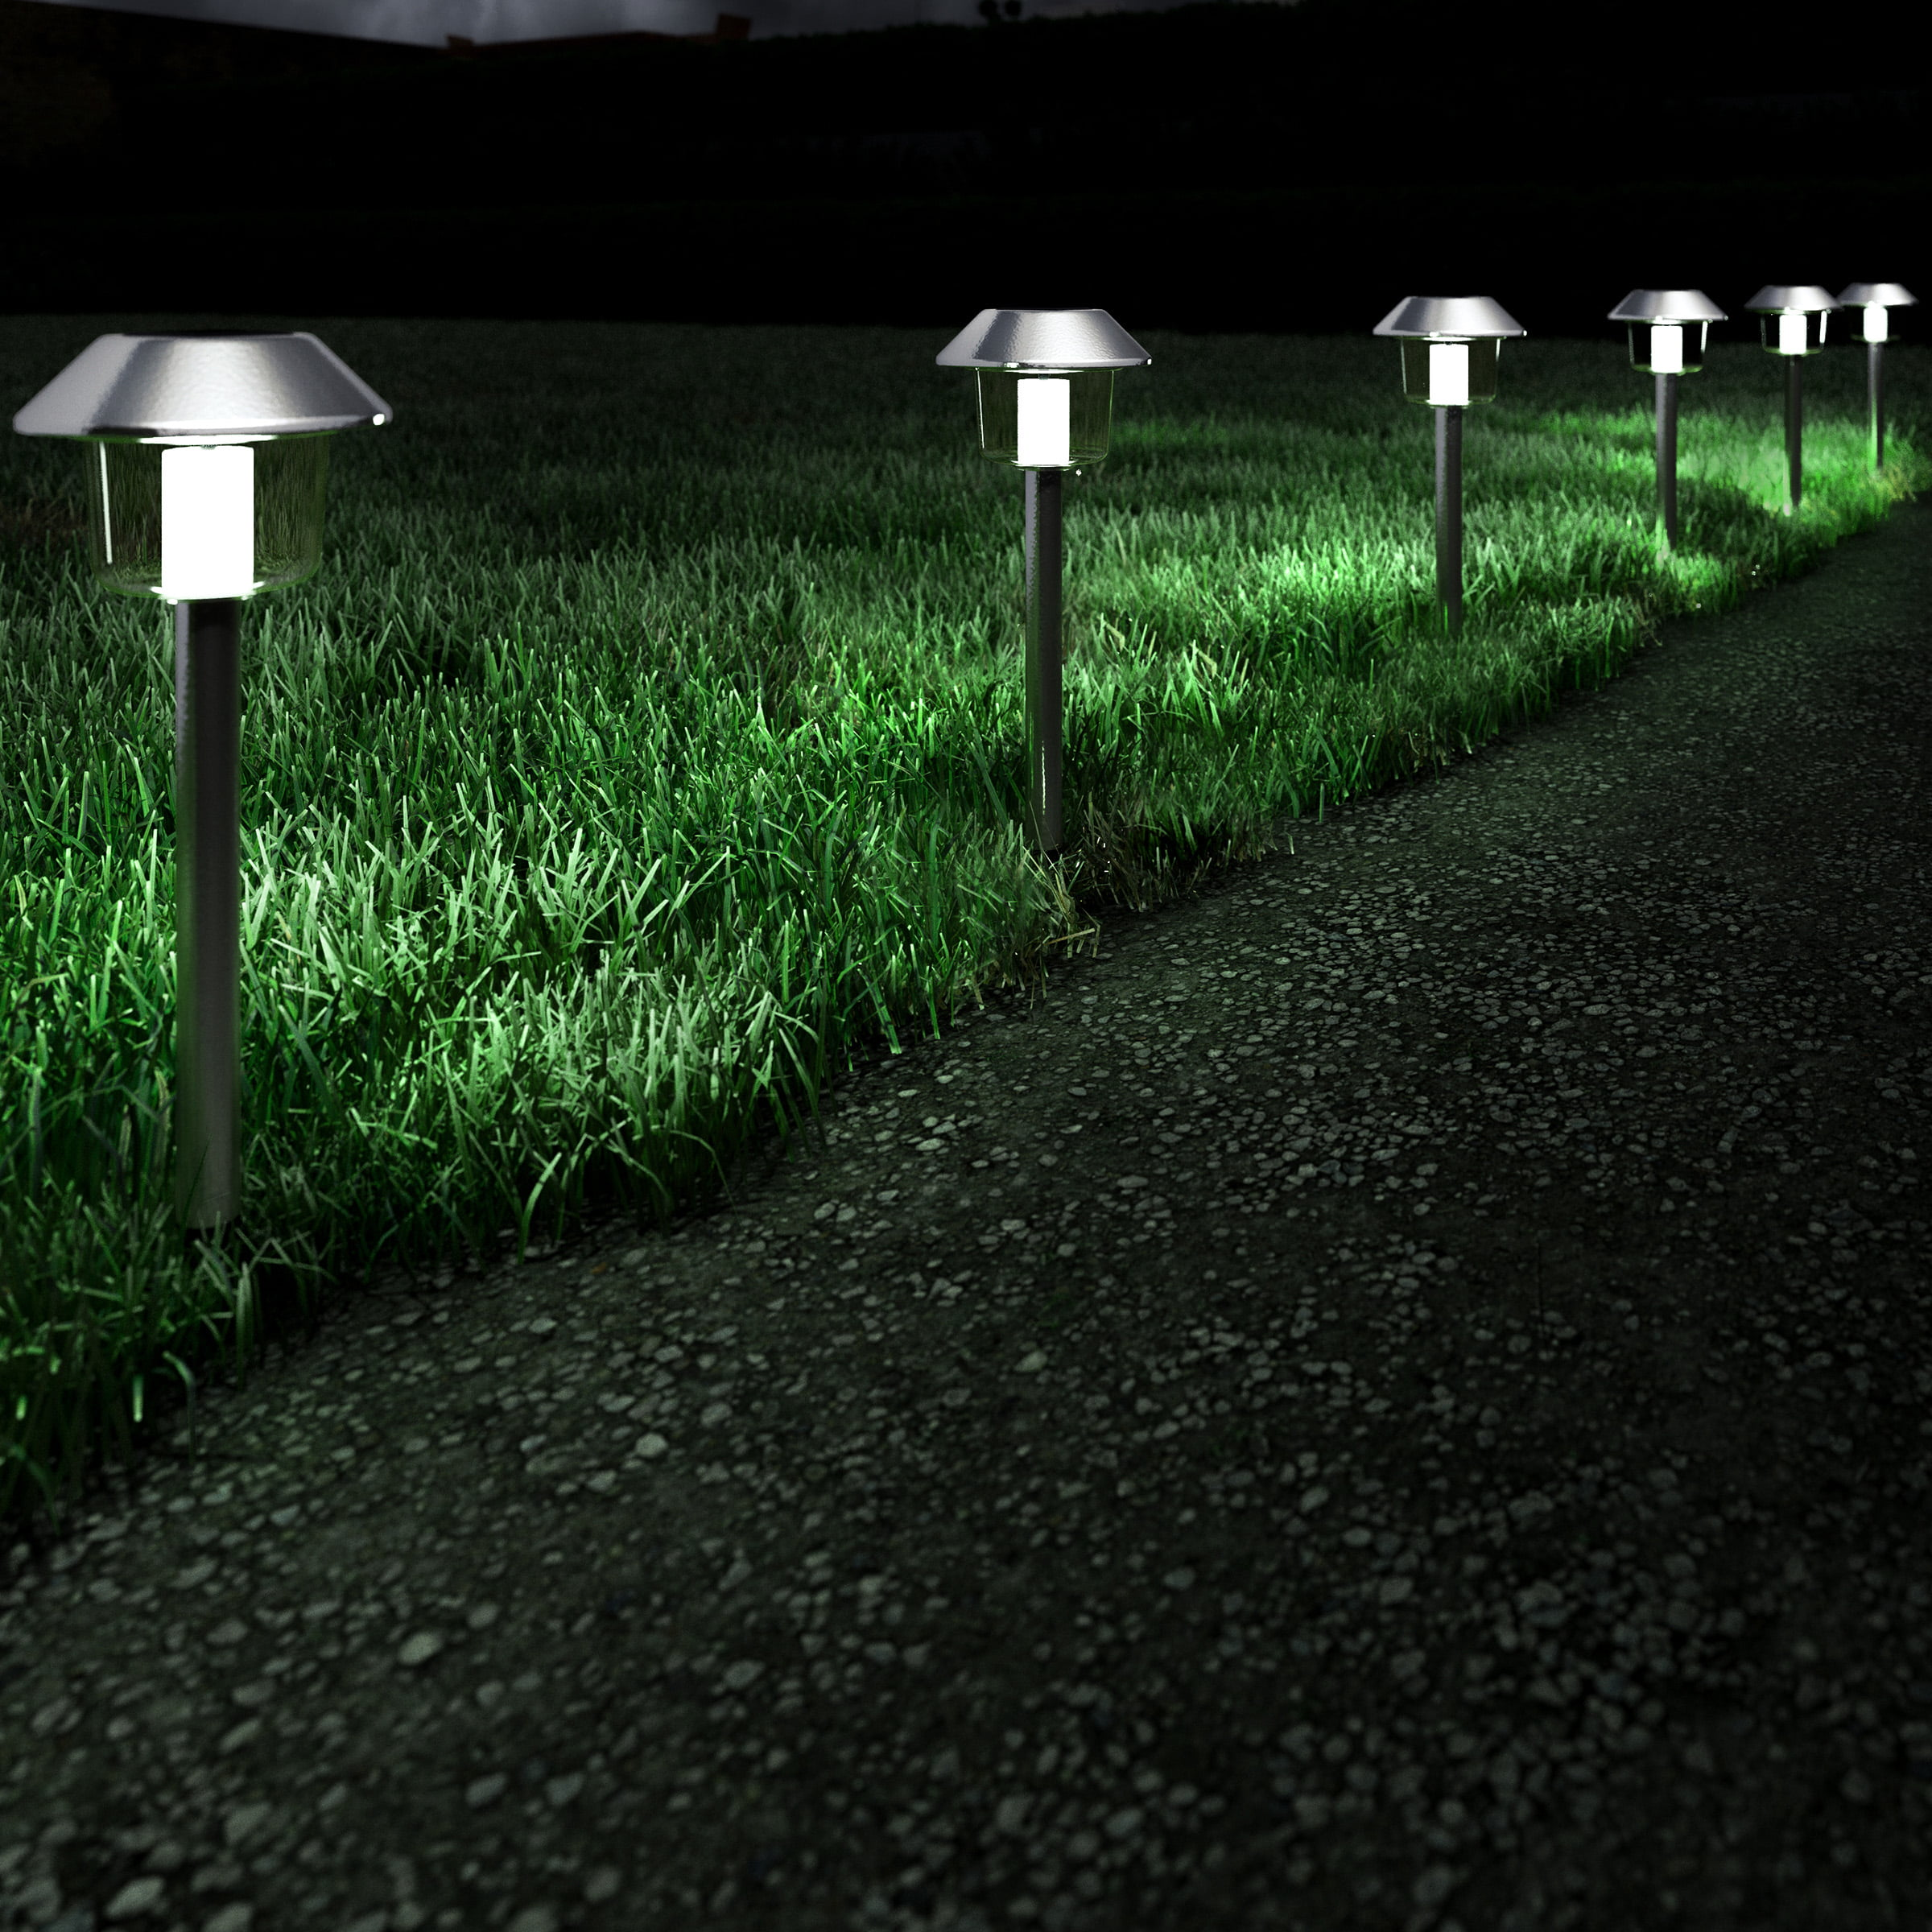 Solar Pathway Lights 17 Stainless Steel Outdoor Stake Lighting For Garden Landscape Yard Patio Driveway Walkway Set Of 6 By Pure